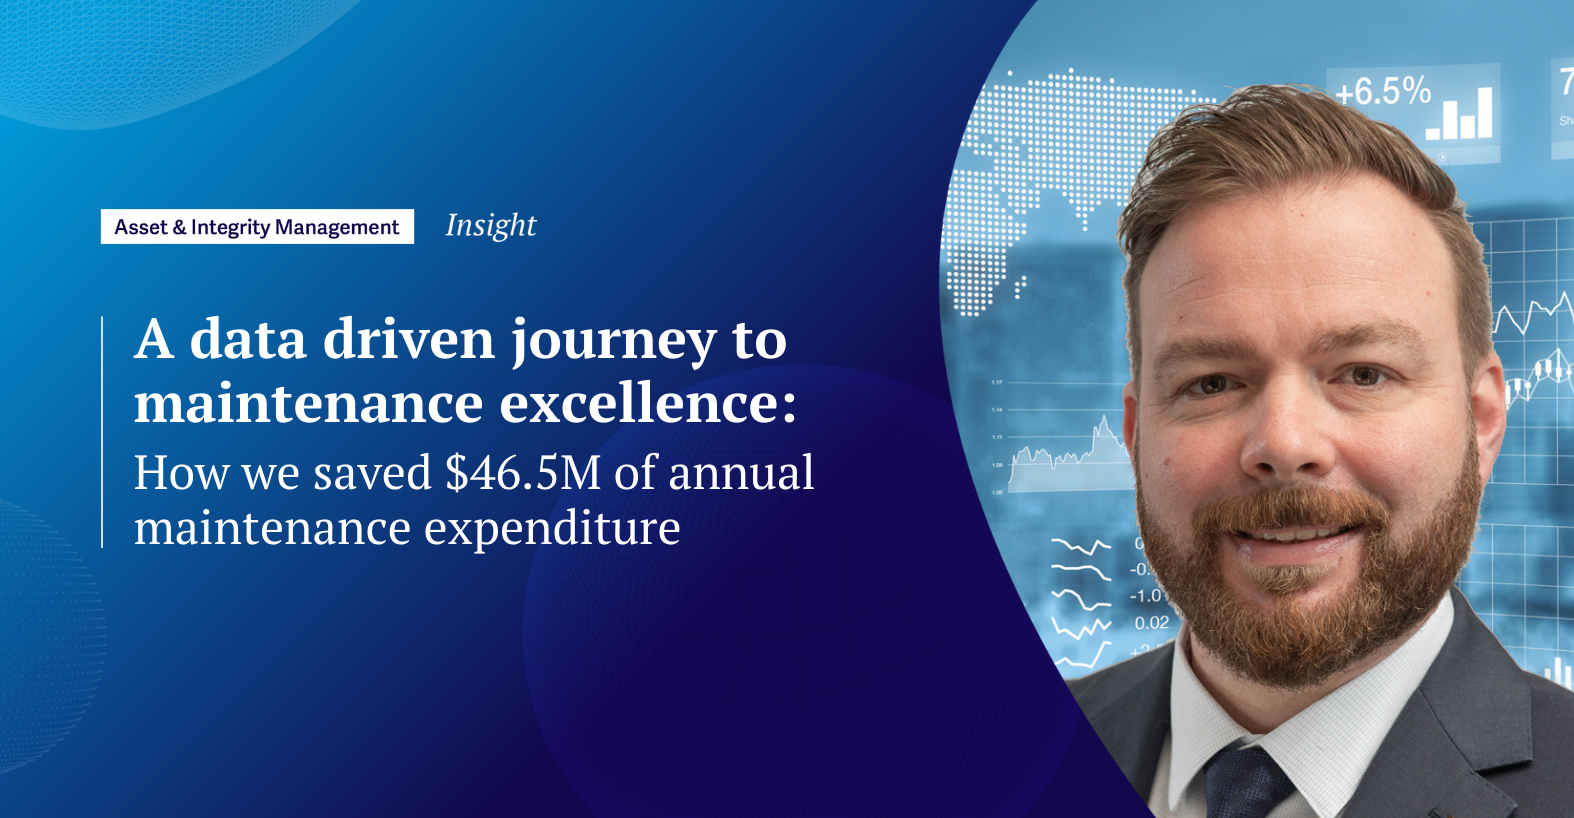 A data driven journey to maintenance excellence: how we saved $46.5M of annual maintenance expenditure